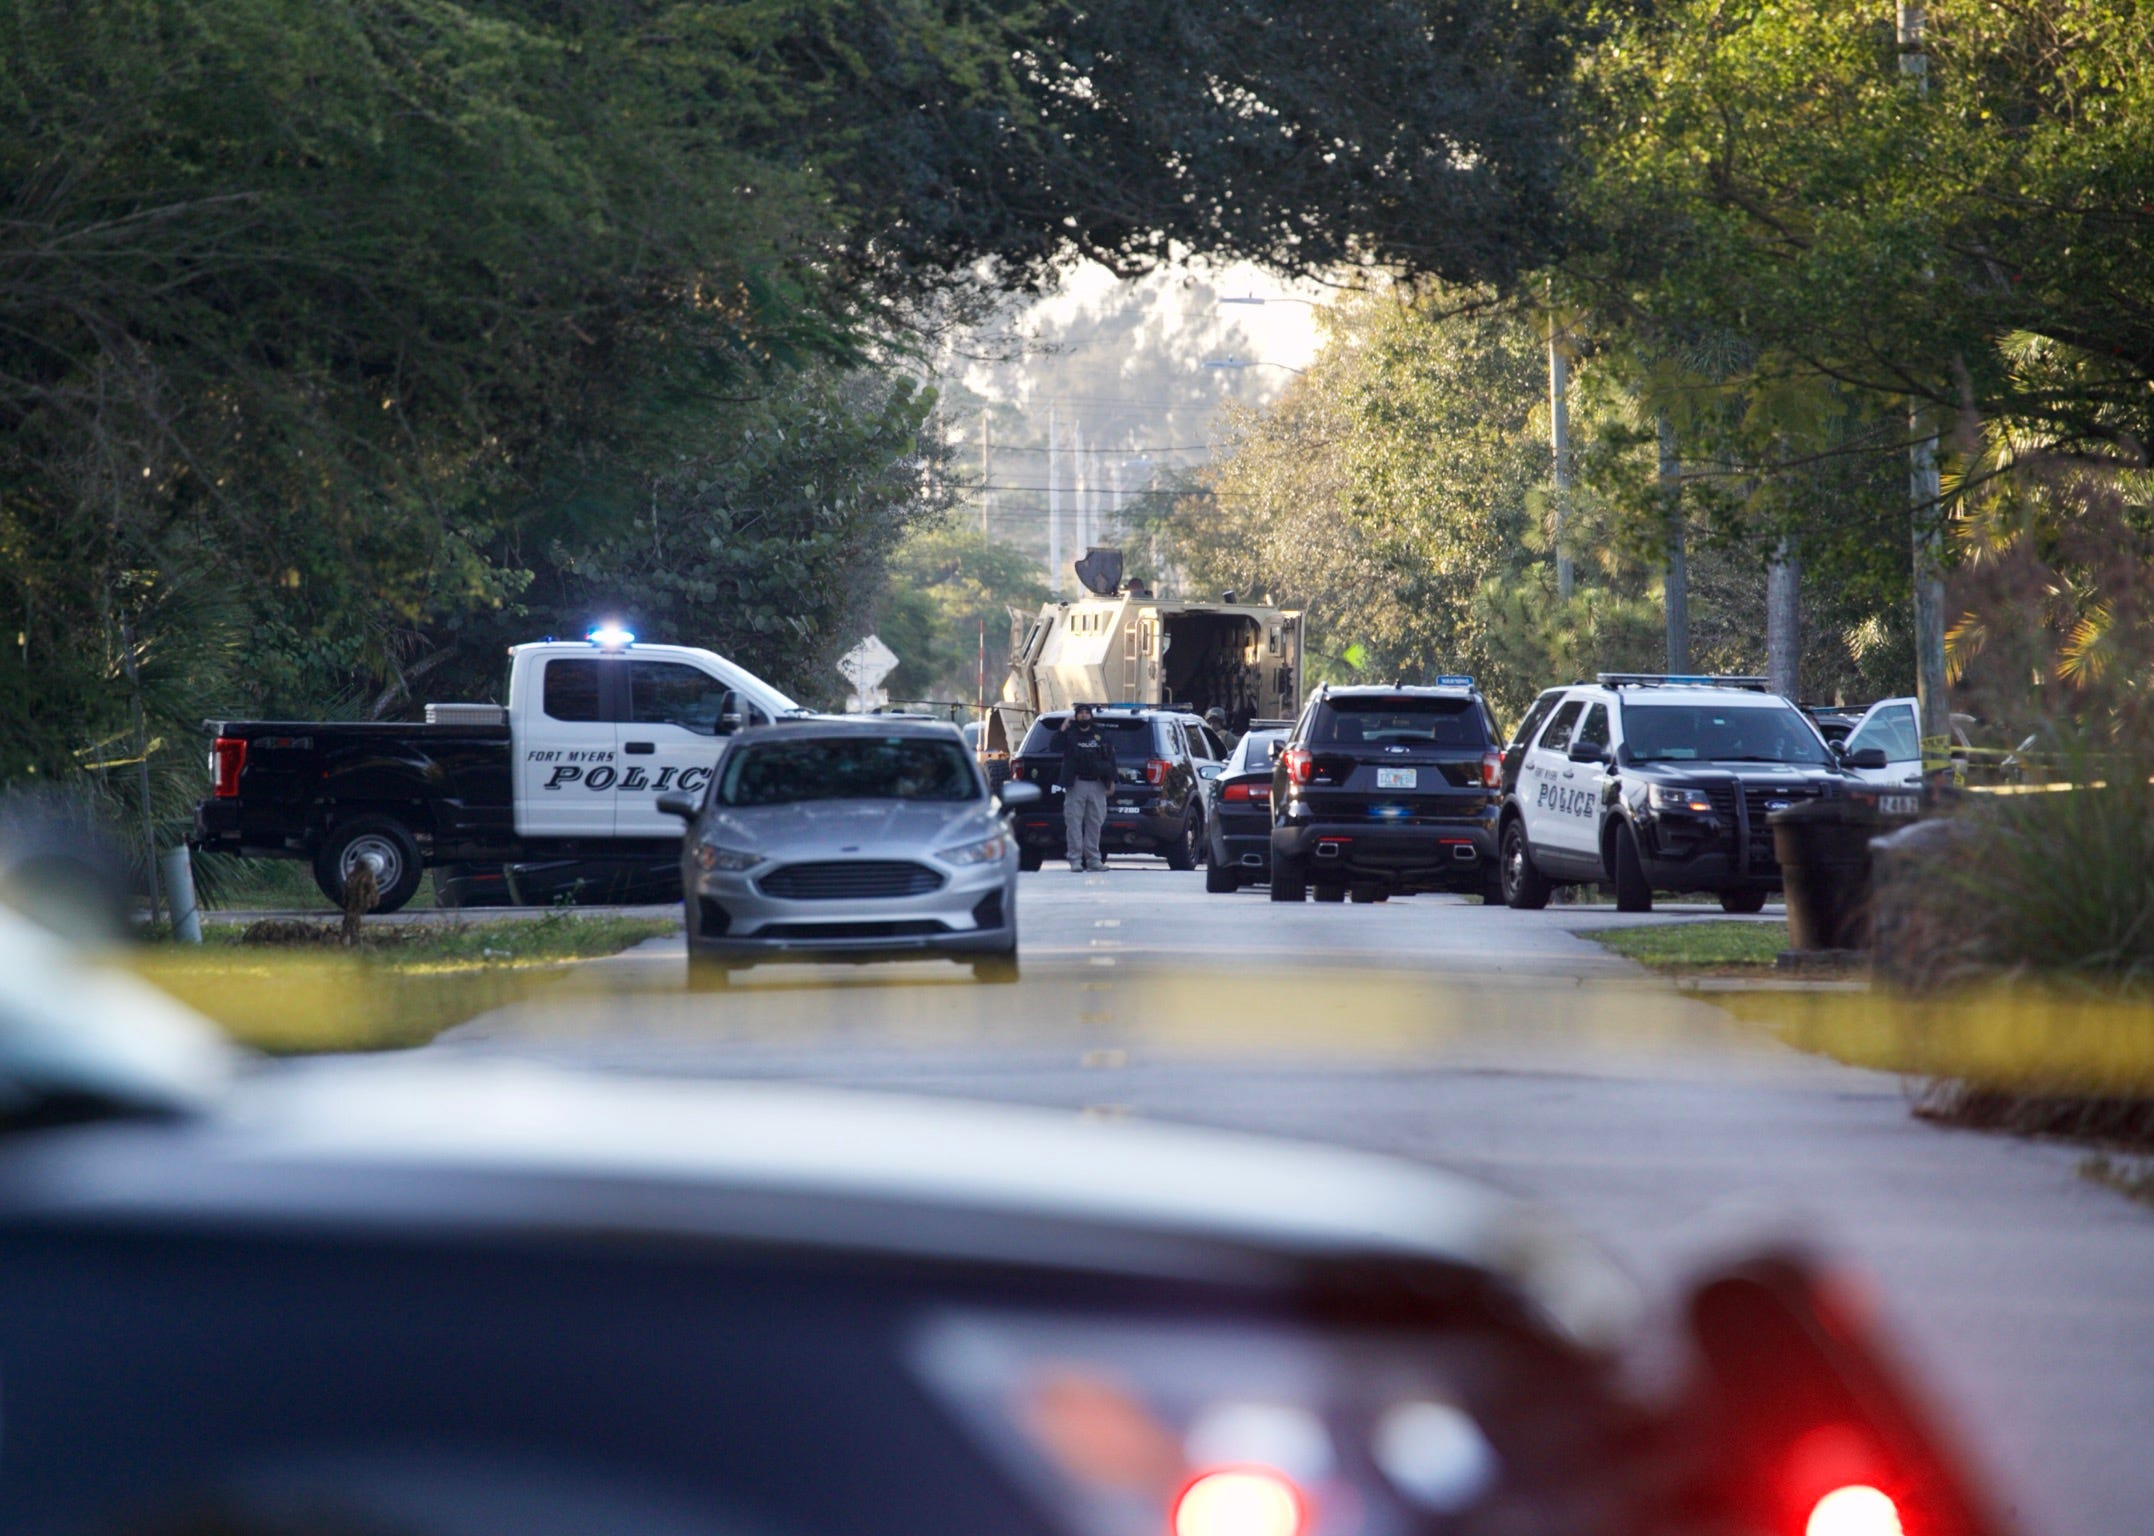 Fort Myers police shut down area near downtown for man barricaded inside home; shots fired